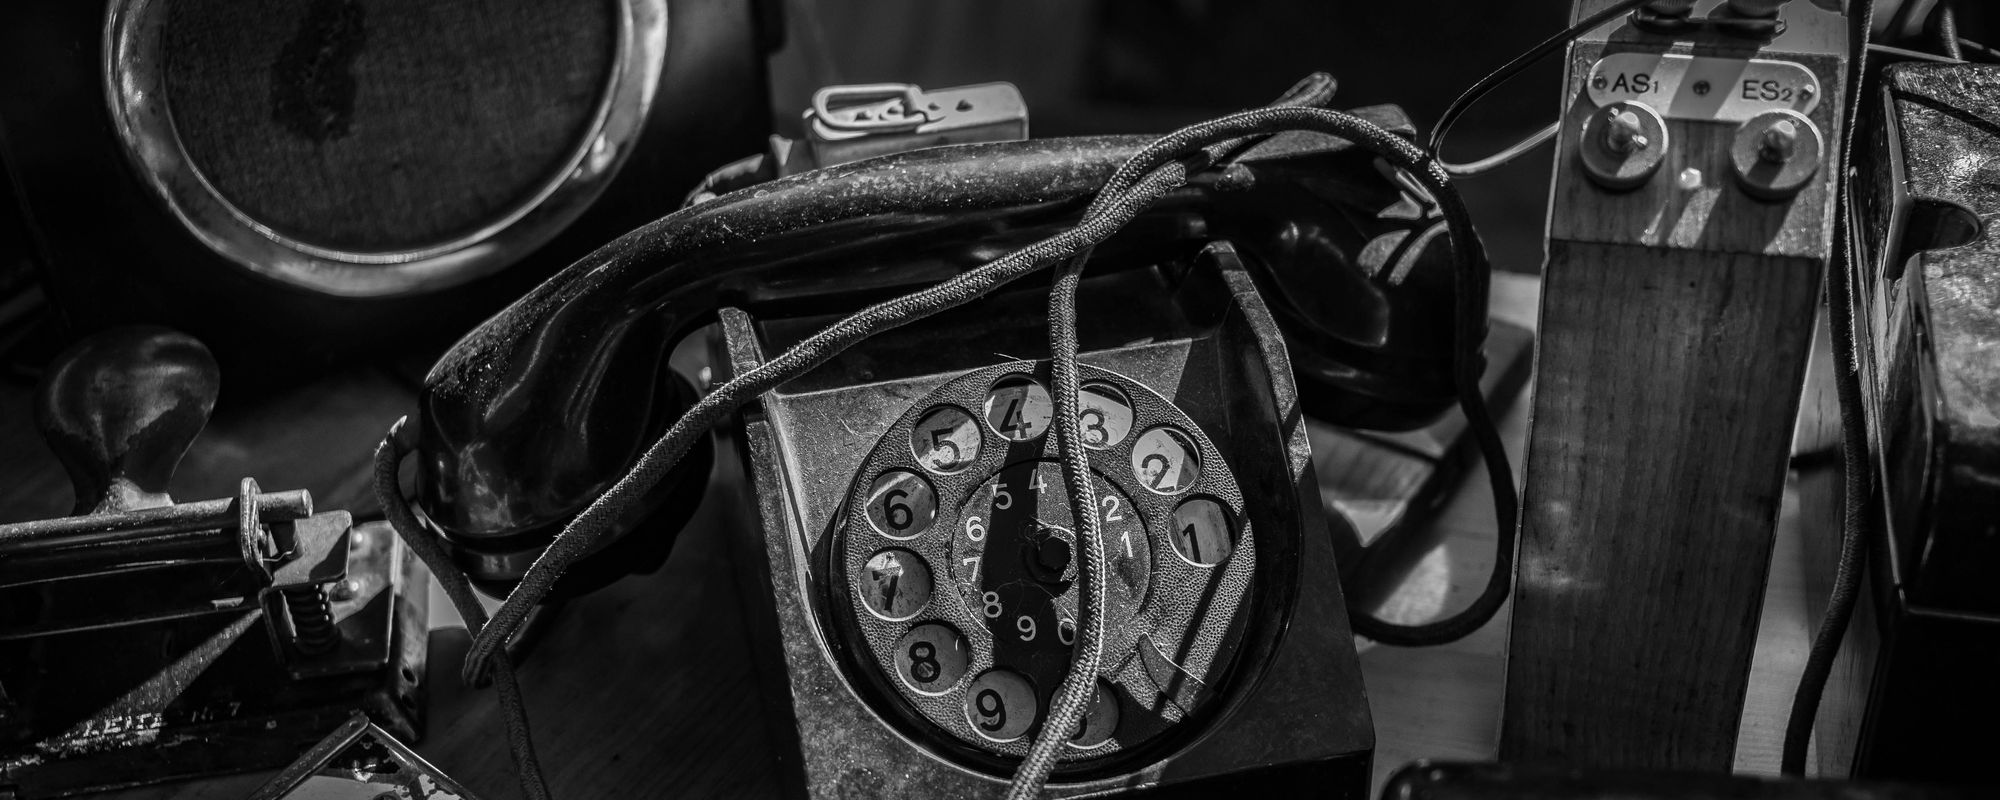 Old analogue phone